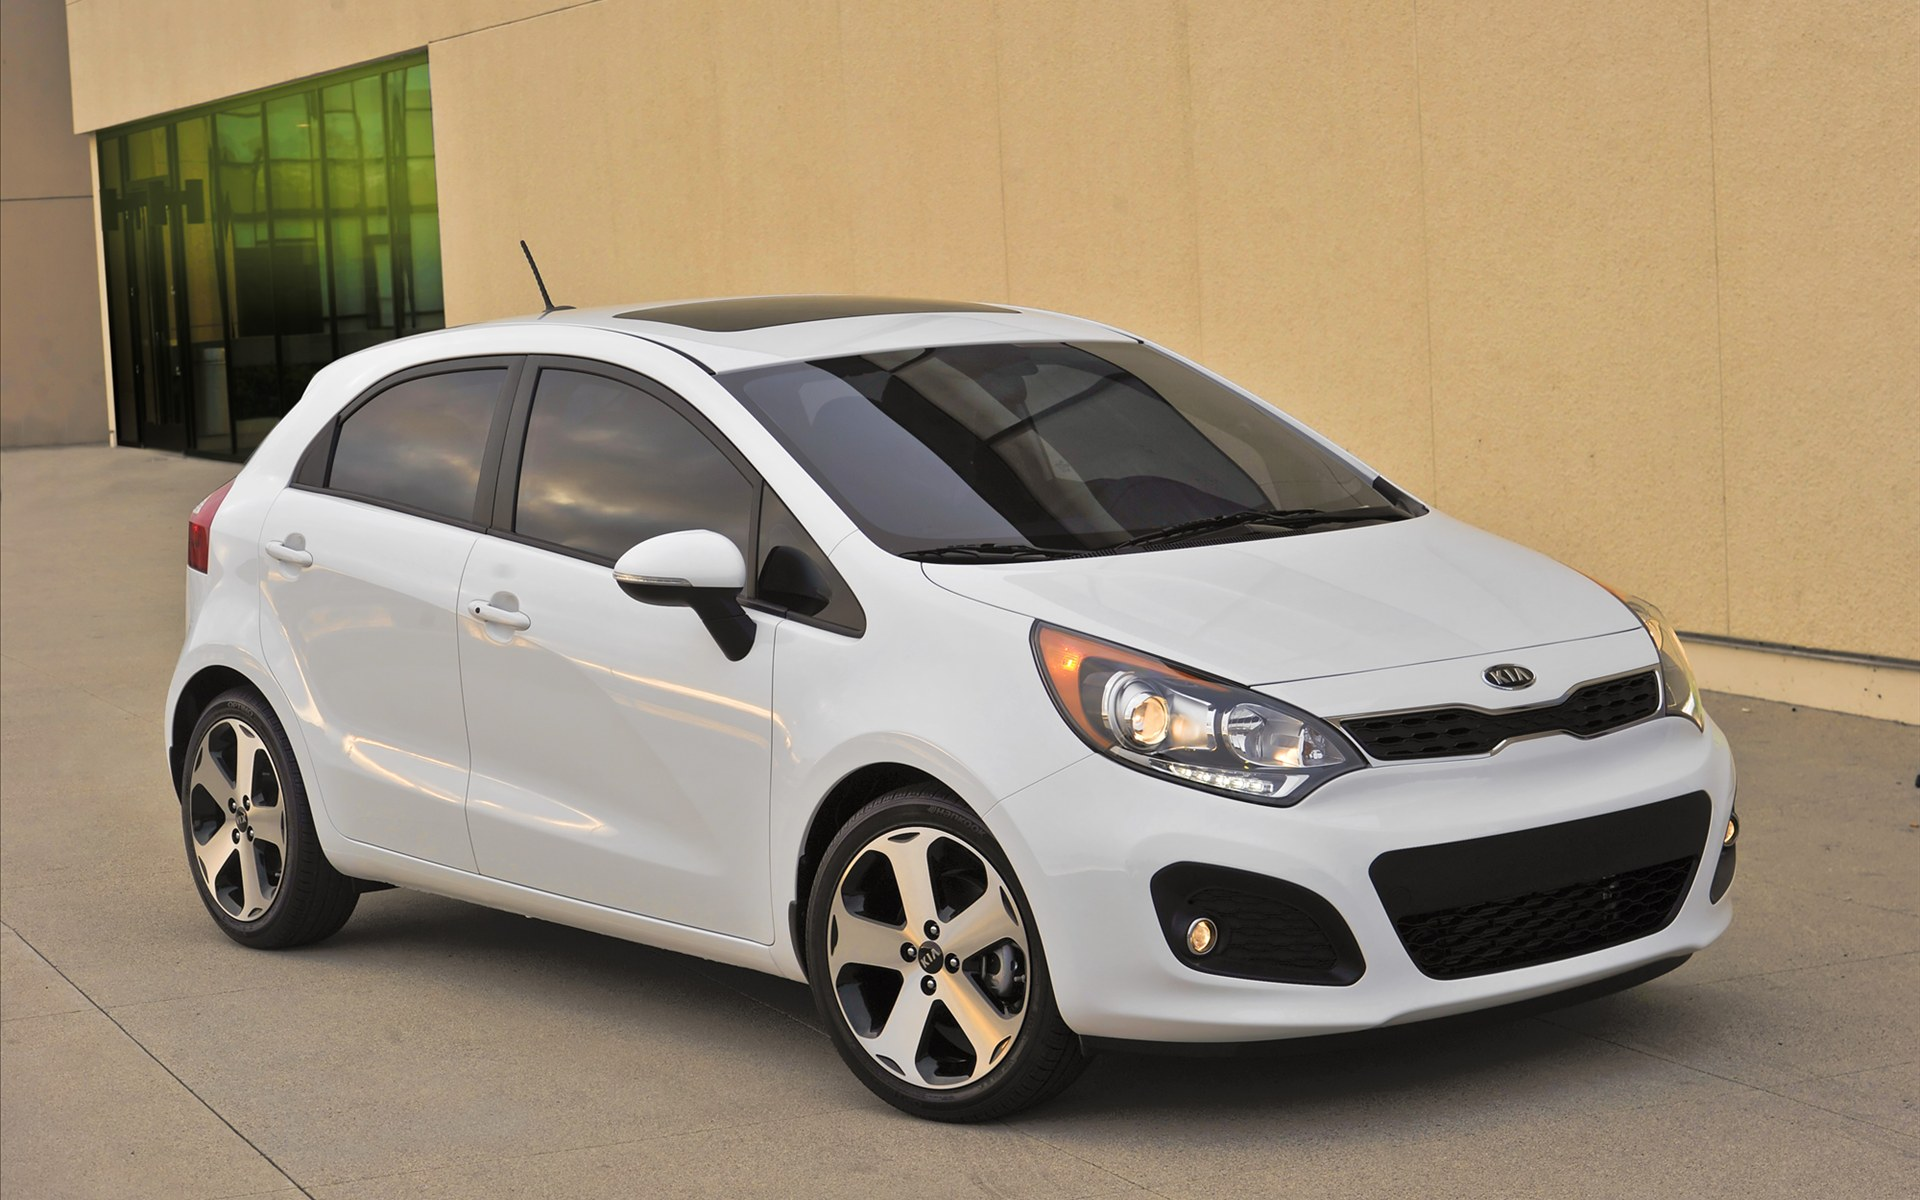 KIA RIO 5 2012 Wallpaper 5 Sense The Car 1920x1200